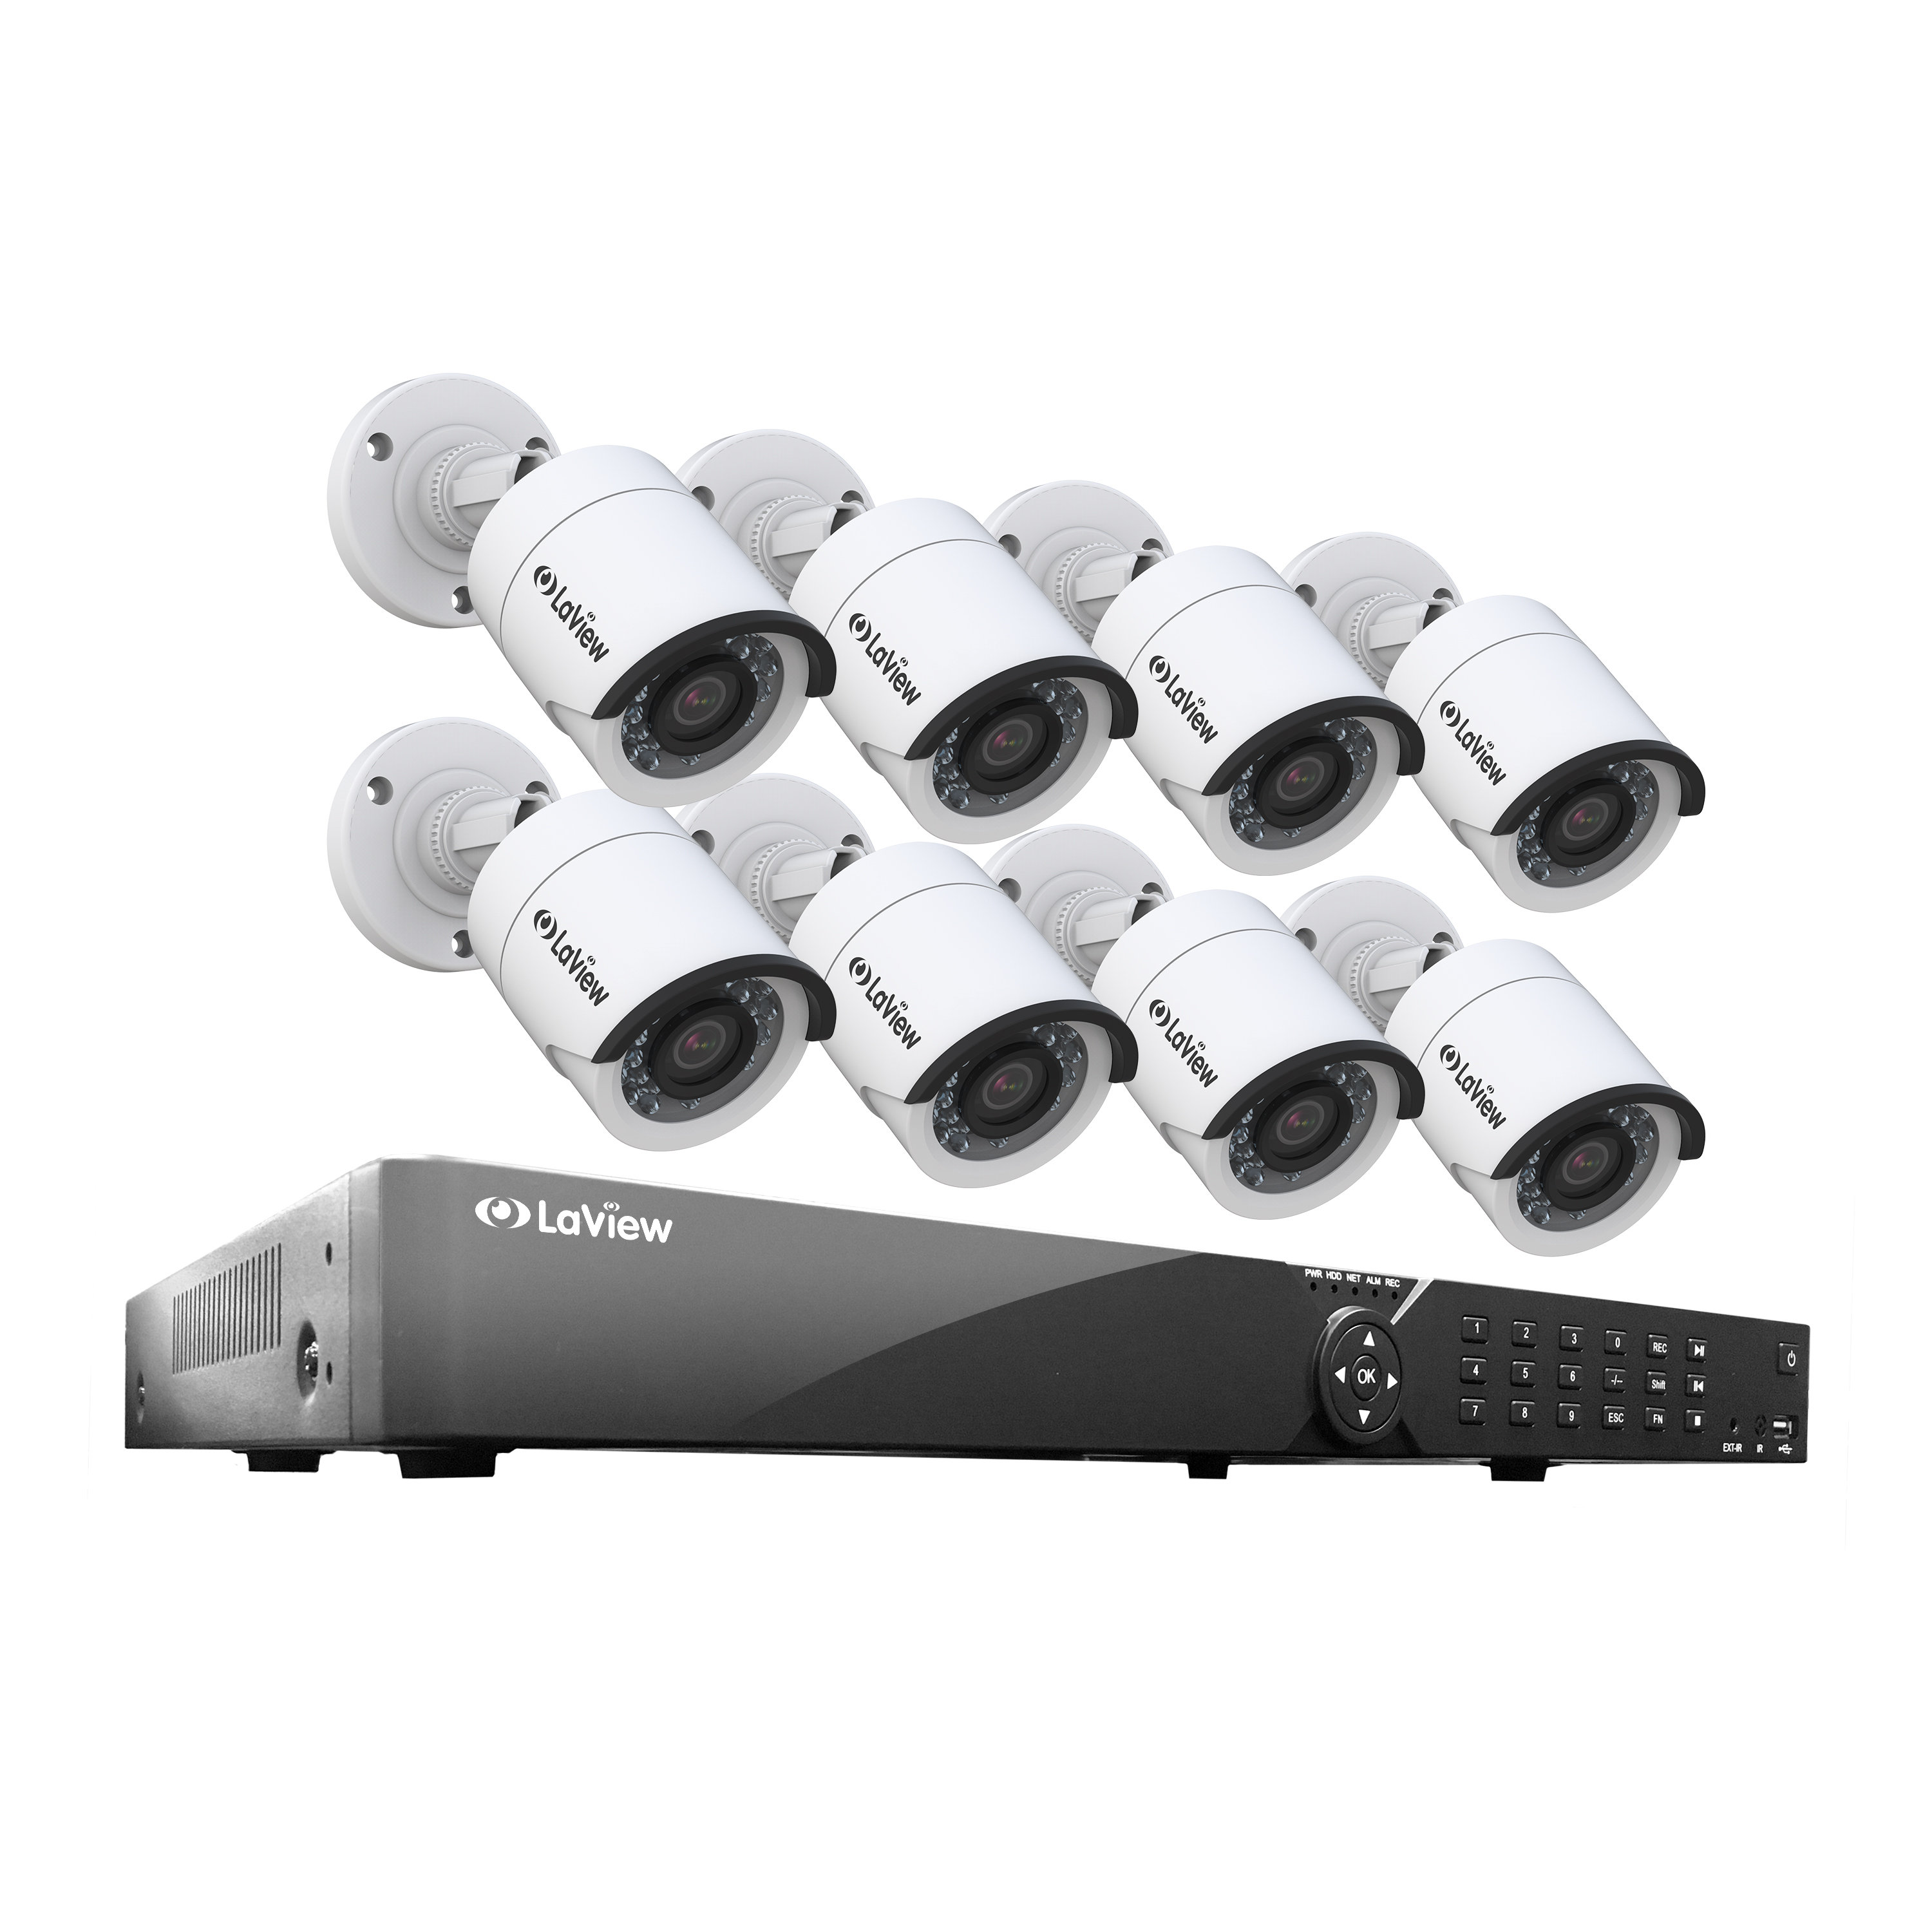 LaView 16 Channel DVR Security System W/8 HD 1080P Indoor/Outdoor Surveillance Cameras- Built in Storage 1TB HDD, Motion Detection, Remote View, Instant Mobile Notifications/Alerts